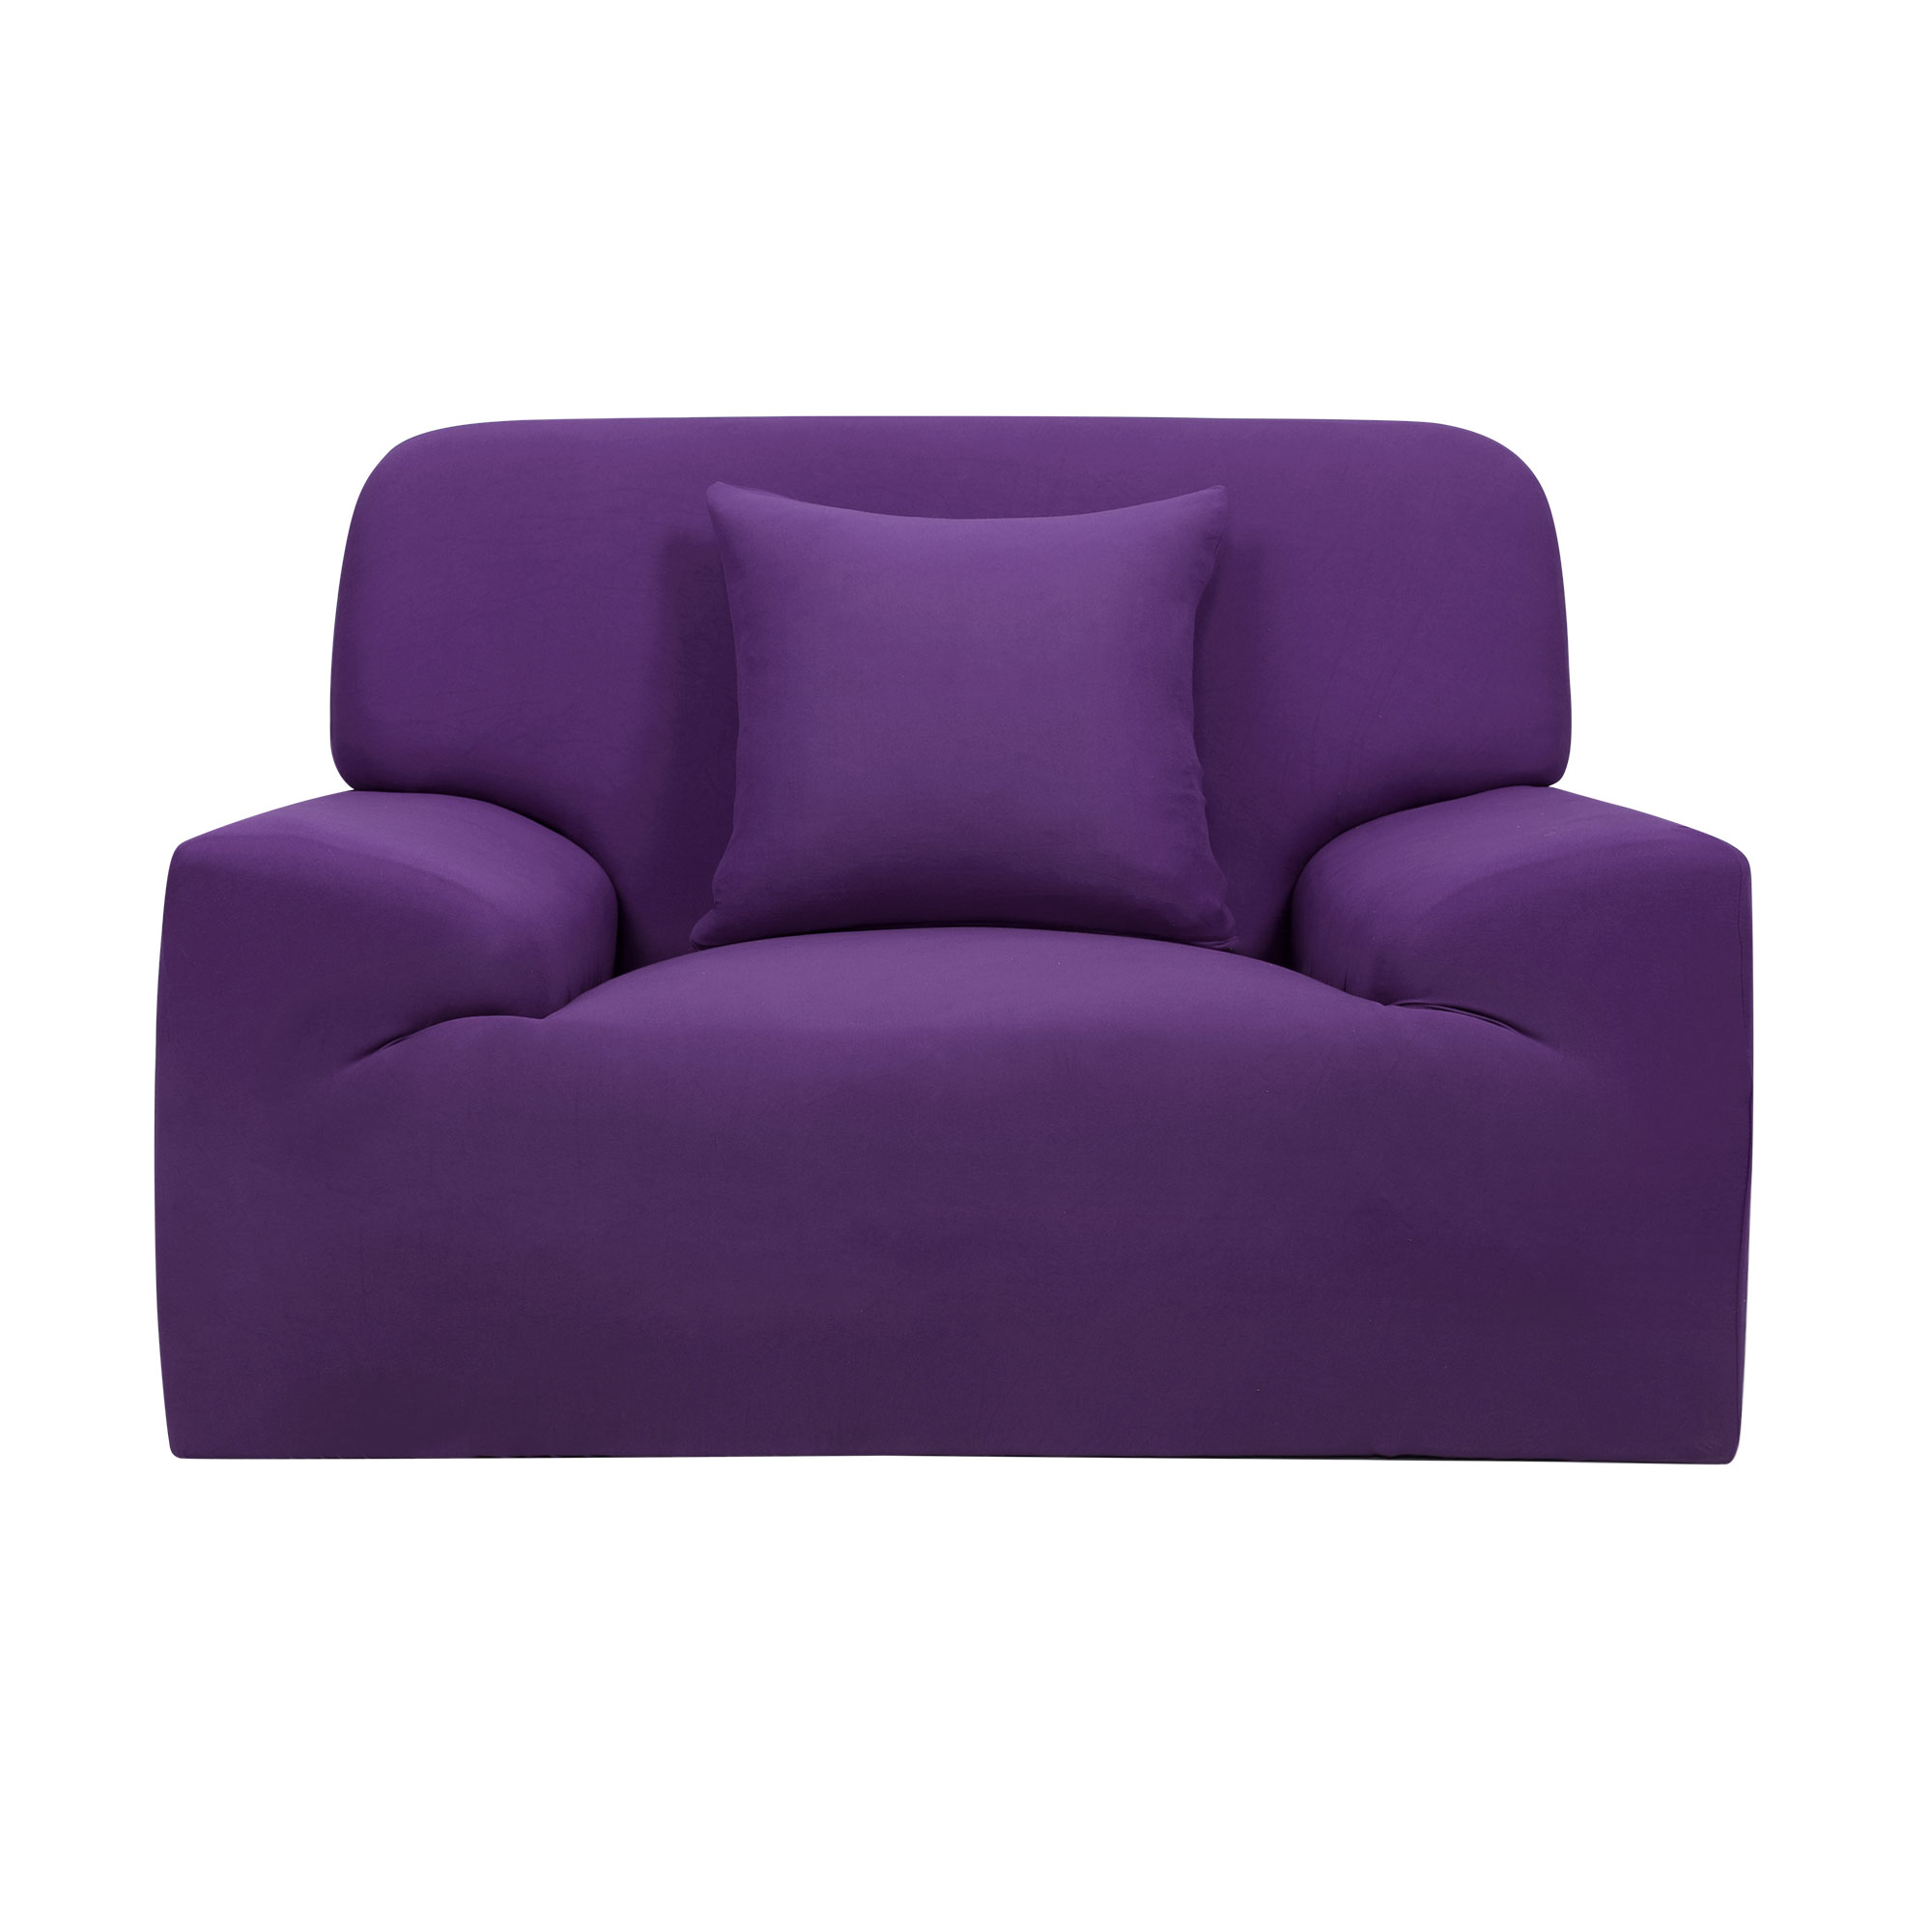 Home Chair Loveseat Sofa Couch Stretch Protector Cover Slipcover Purple 35''-55'